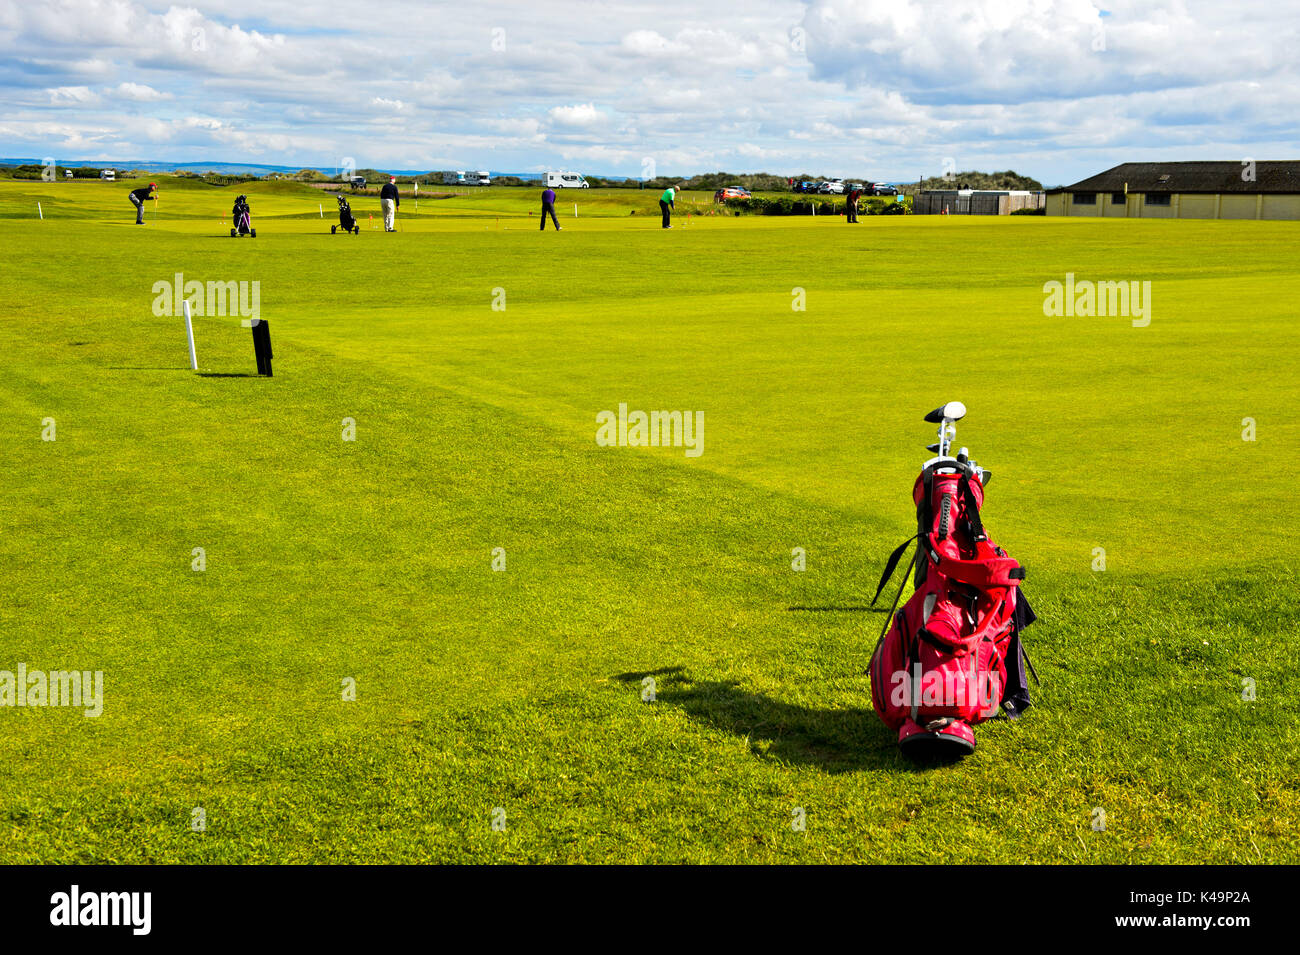 Teeing Ground Of Golf Course, Golf Course St Andrews Links, St Andrews, Fife, Scotland, Great Britain - Stock Image